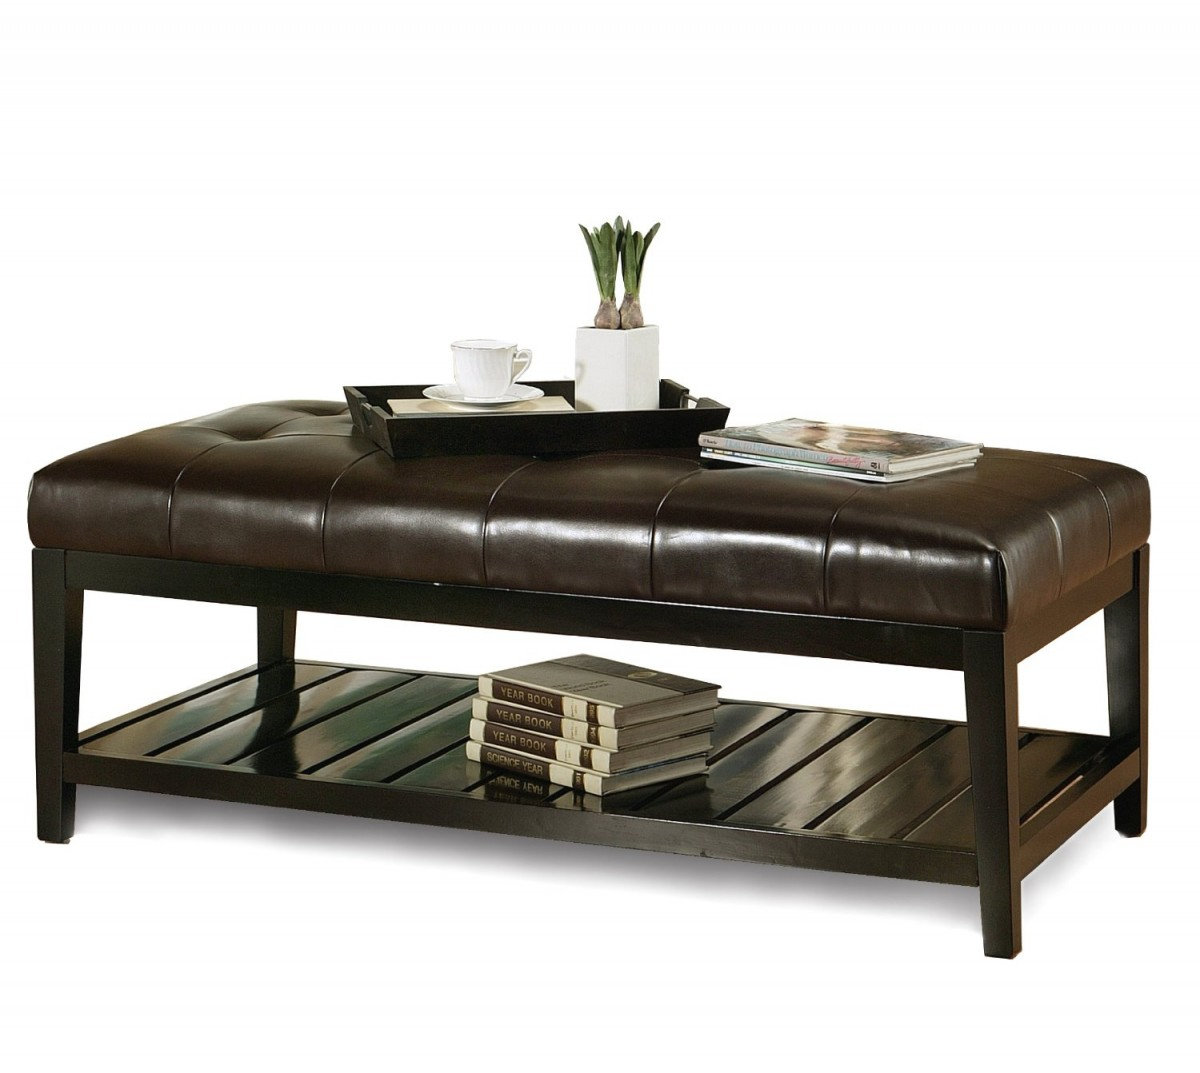 Featured Photo of Original Leather Ottoman Coffee Table Rectangle High Quality